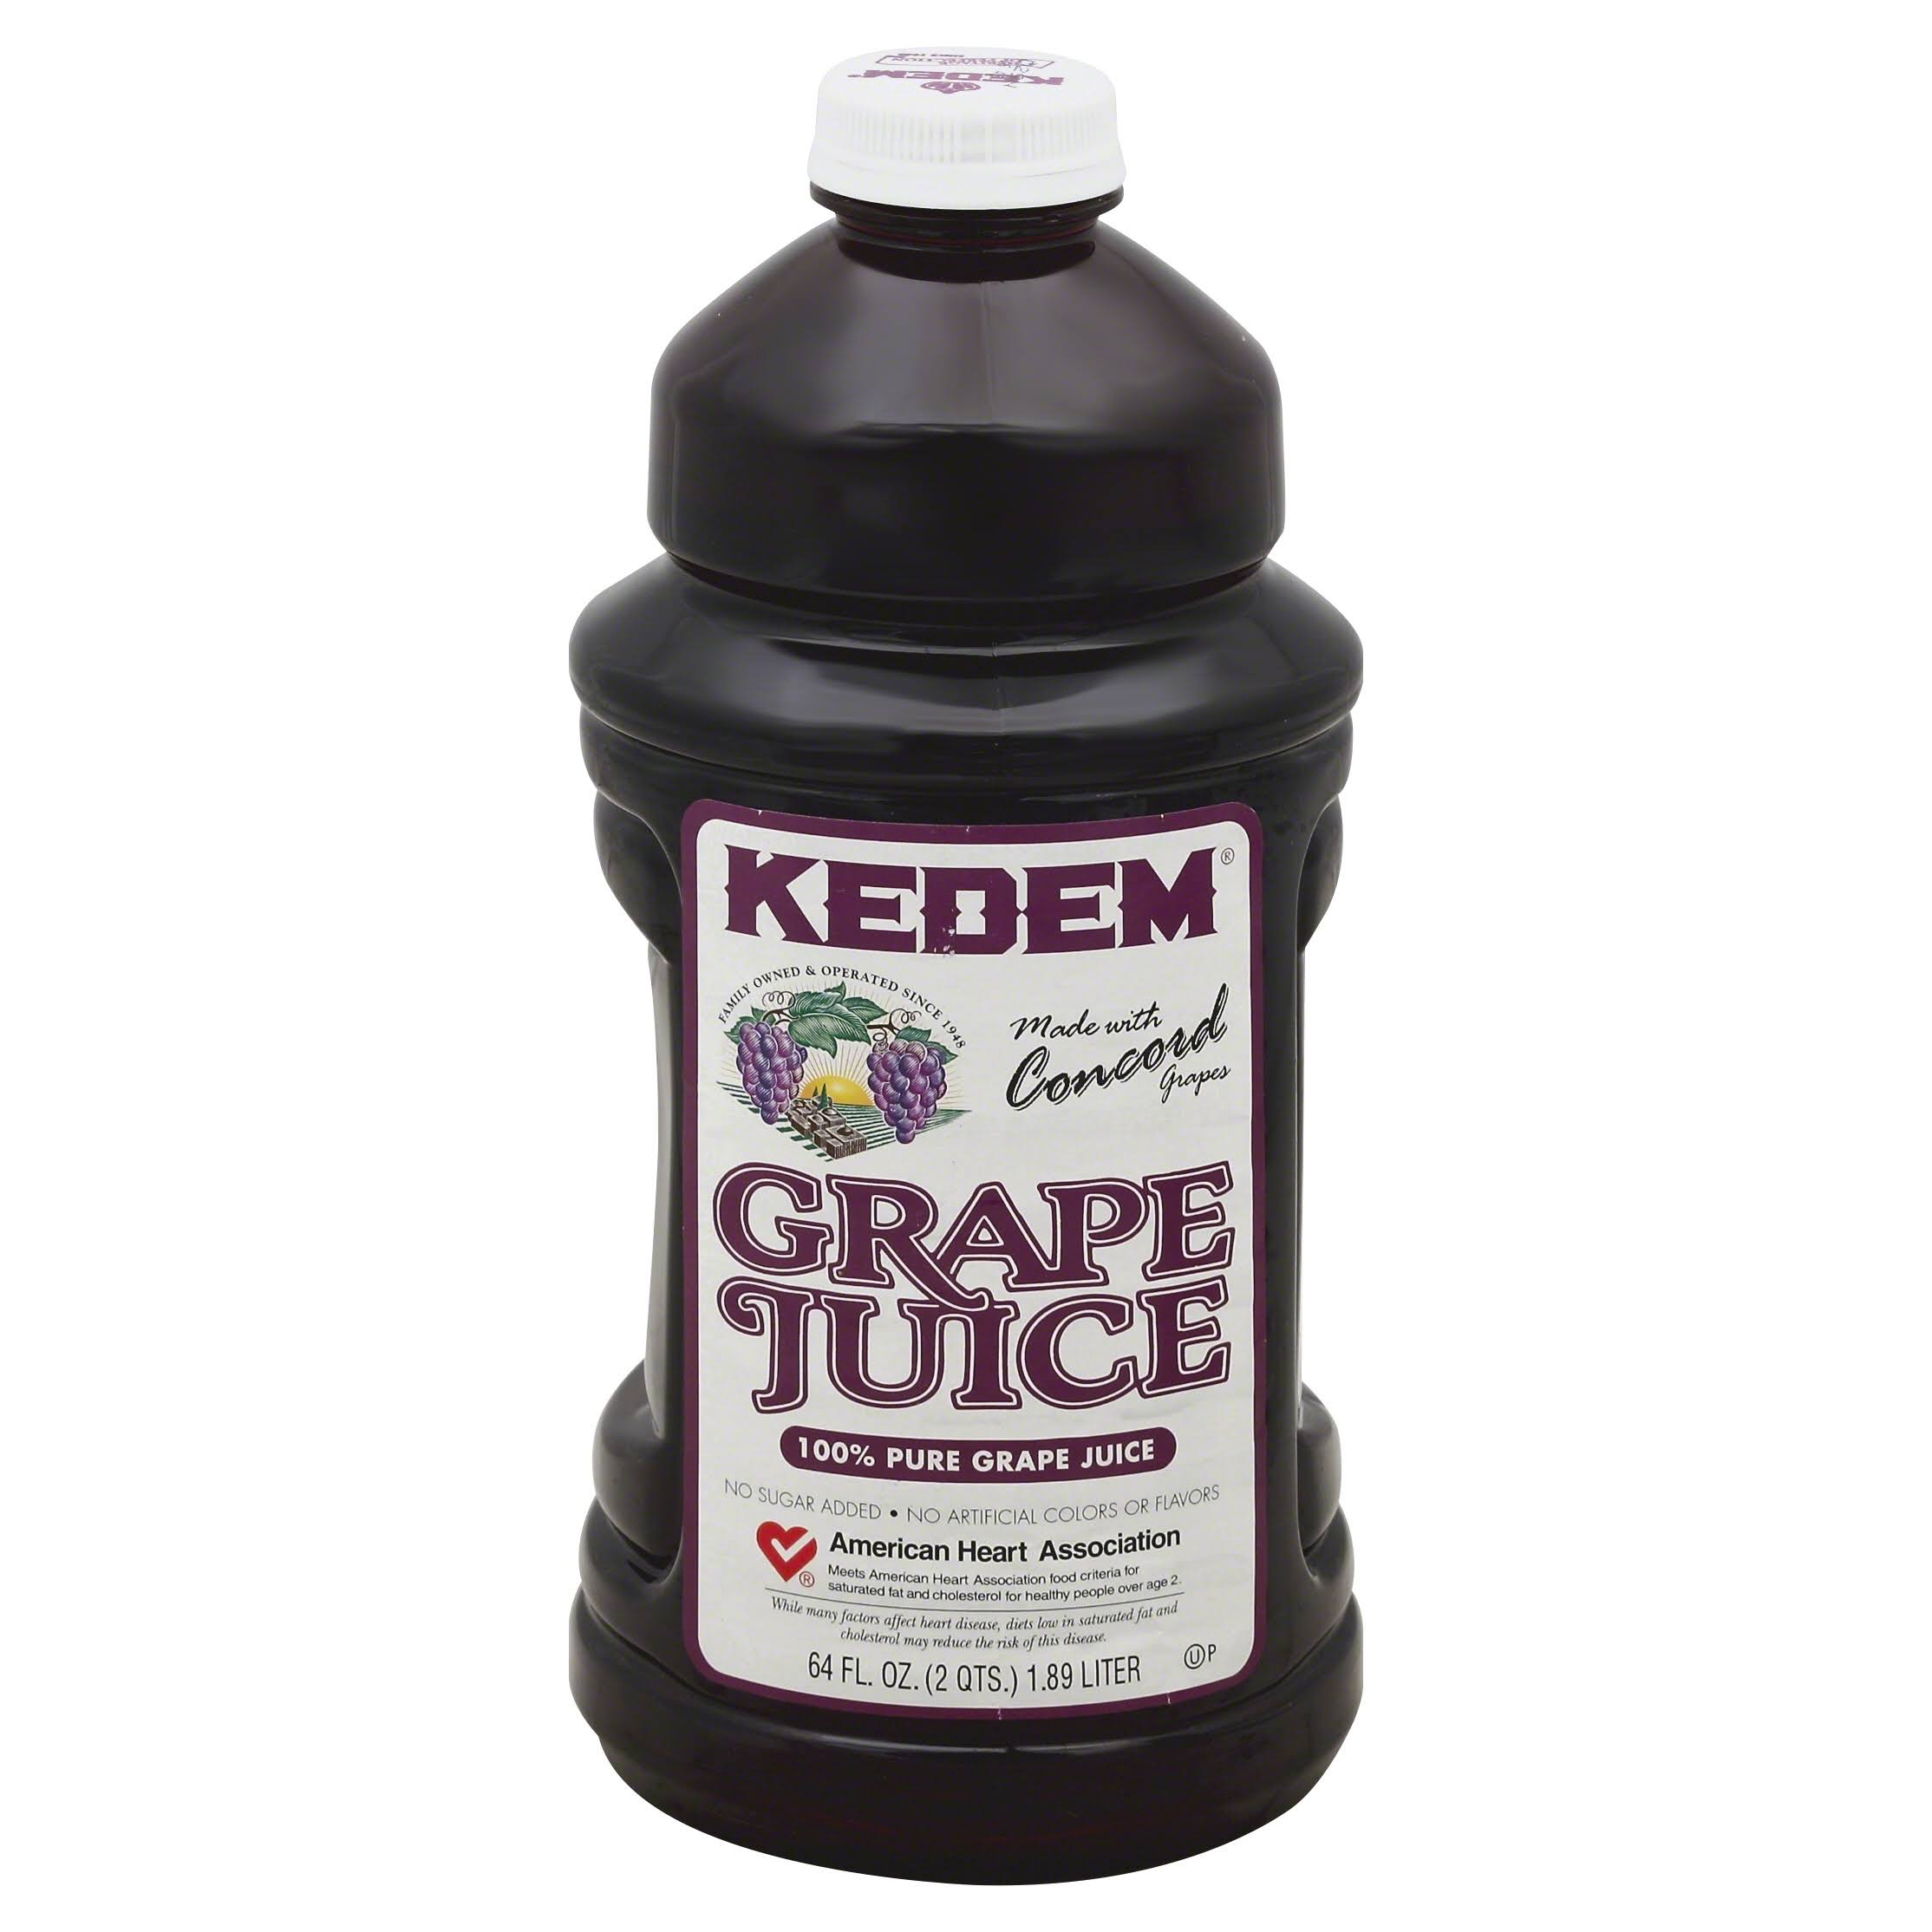 Kedem 100% Juice, Pure Grape - 64 fl oz